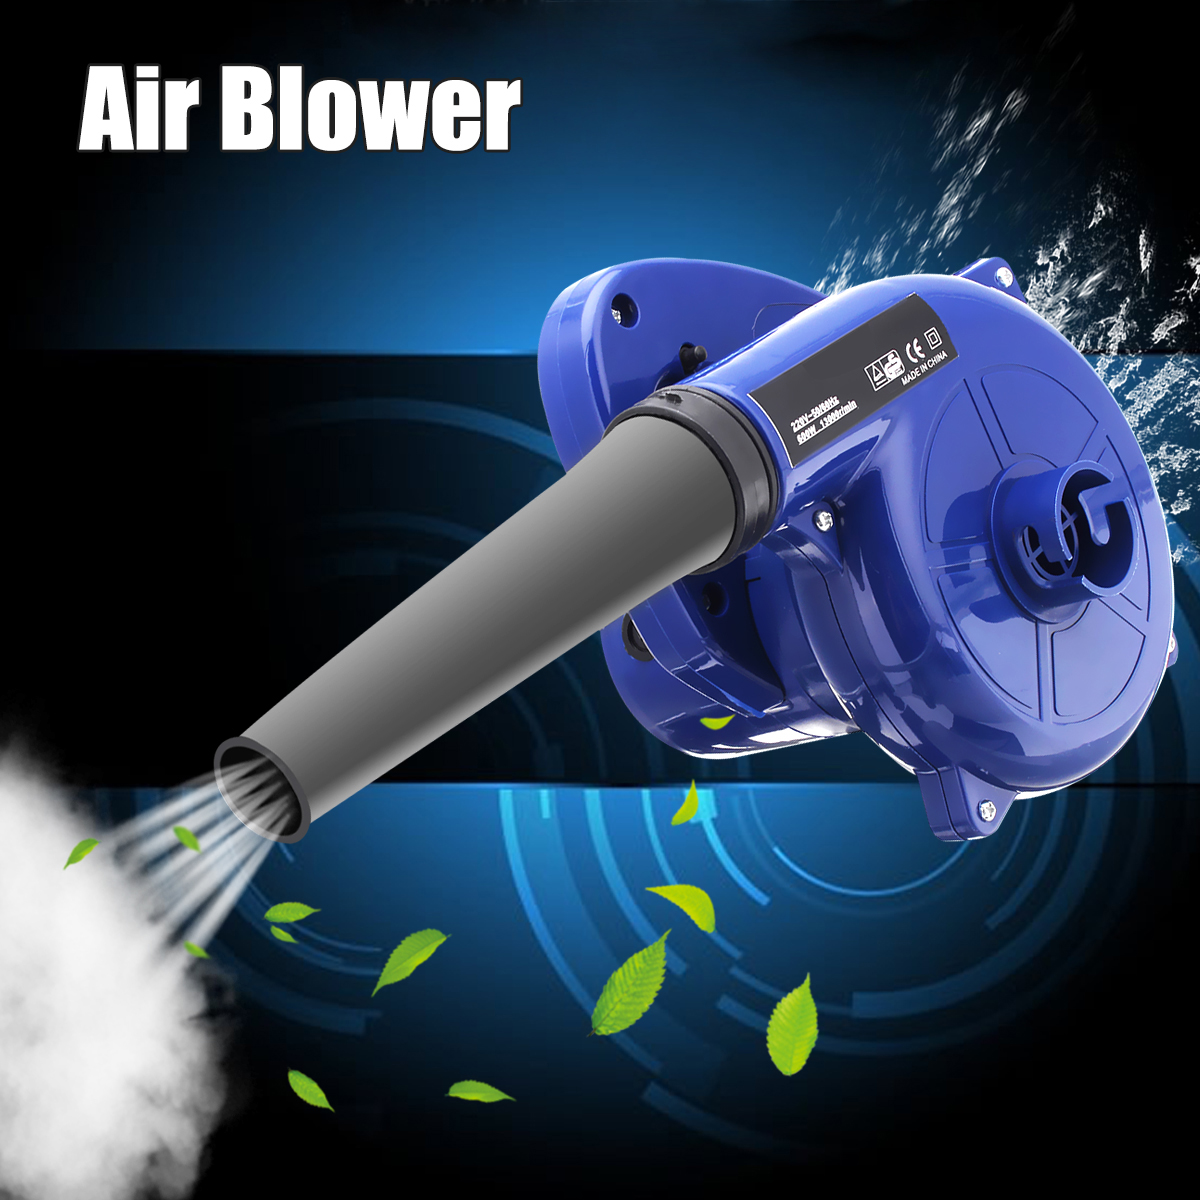 600W 220V Electric Handheld Air Blower Computer Dust Collector Fan Vacuum Cleaner Dust Collecting Leaf Car Dust Blowing Remover